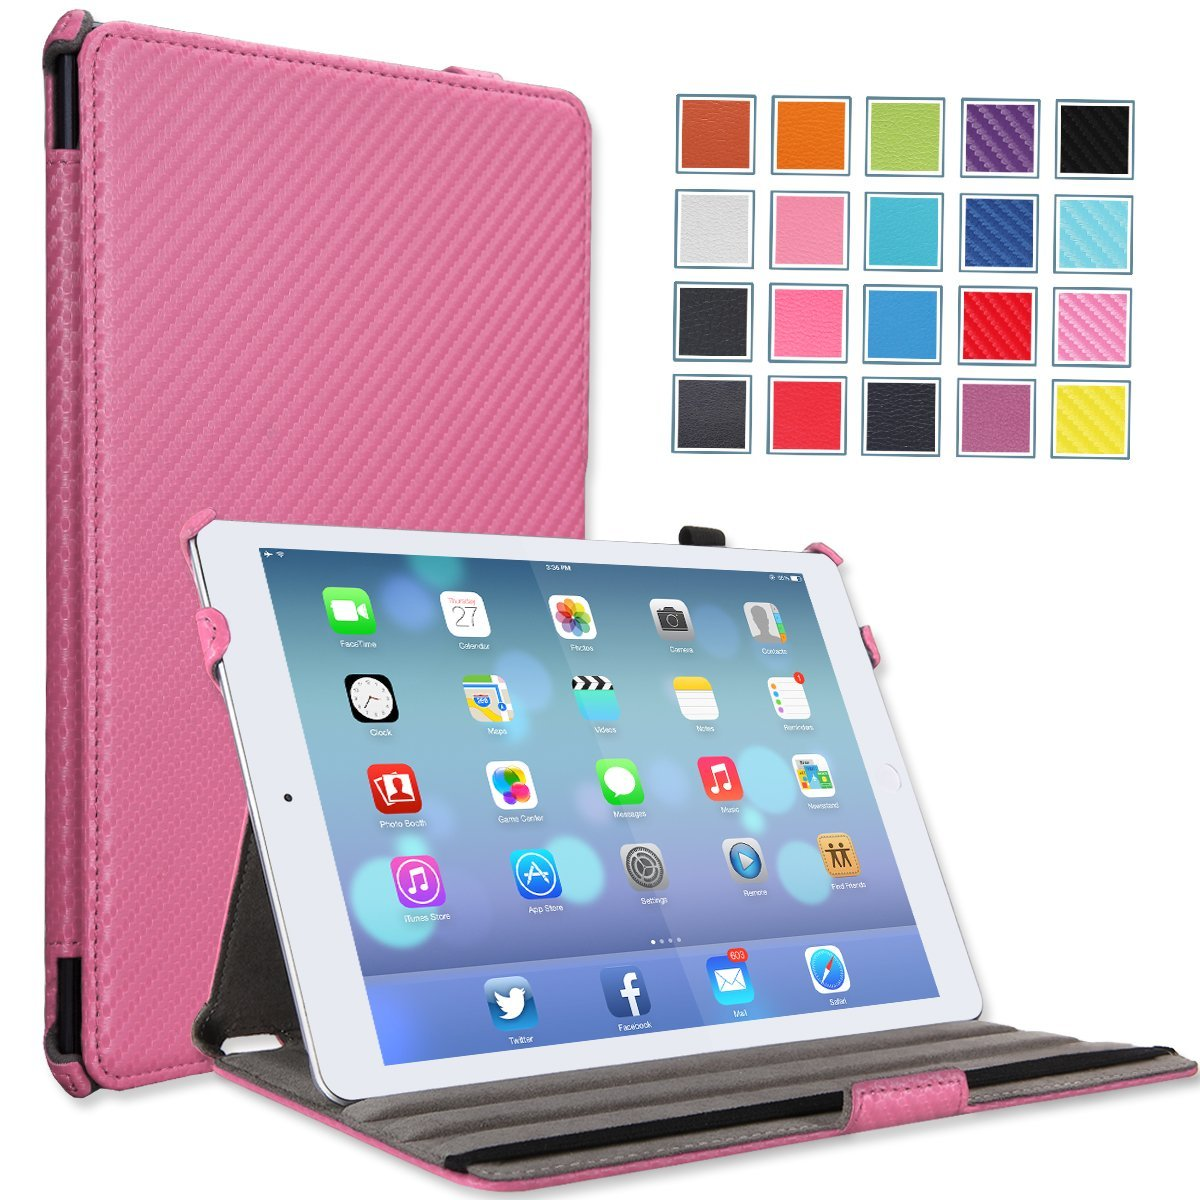 moko_slim_fit_folio_stand_cover_ipad_air